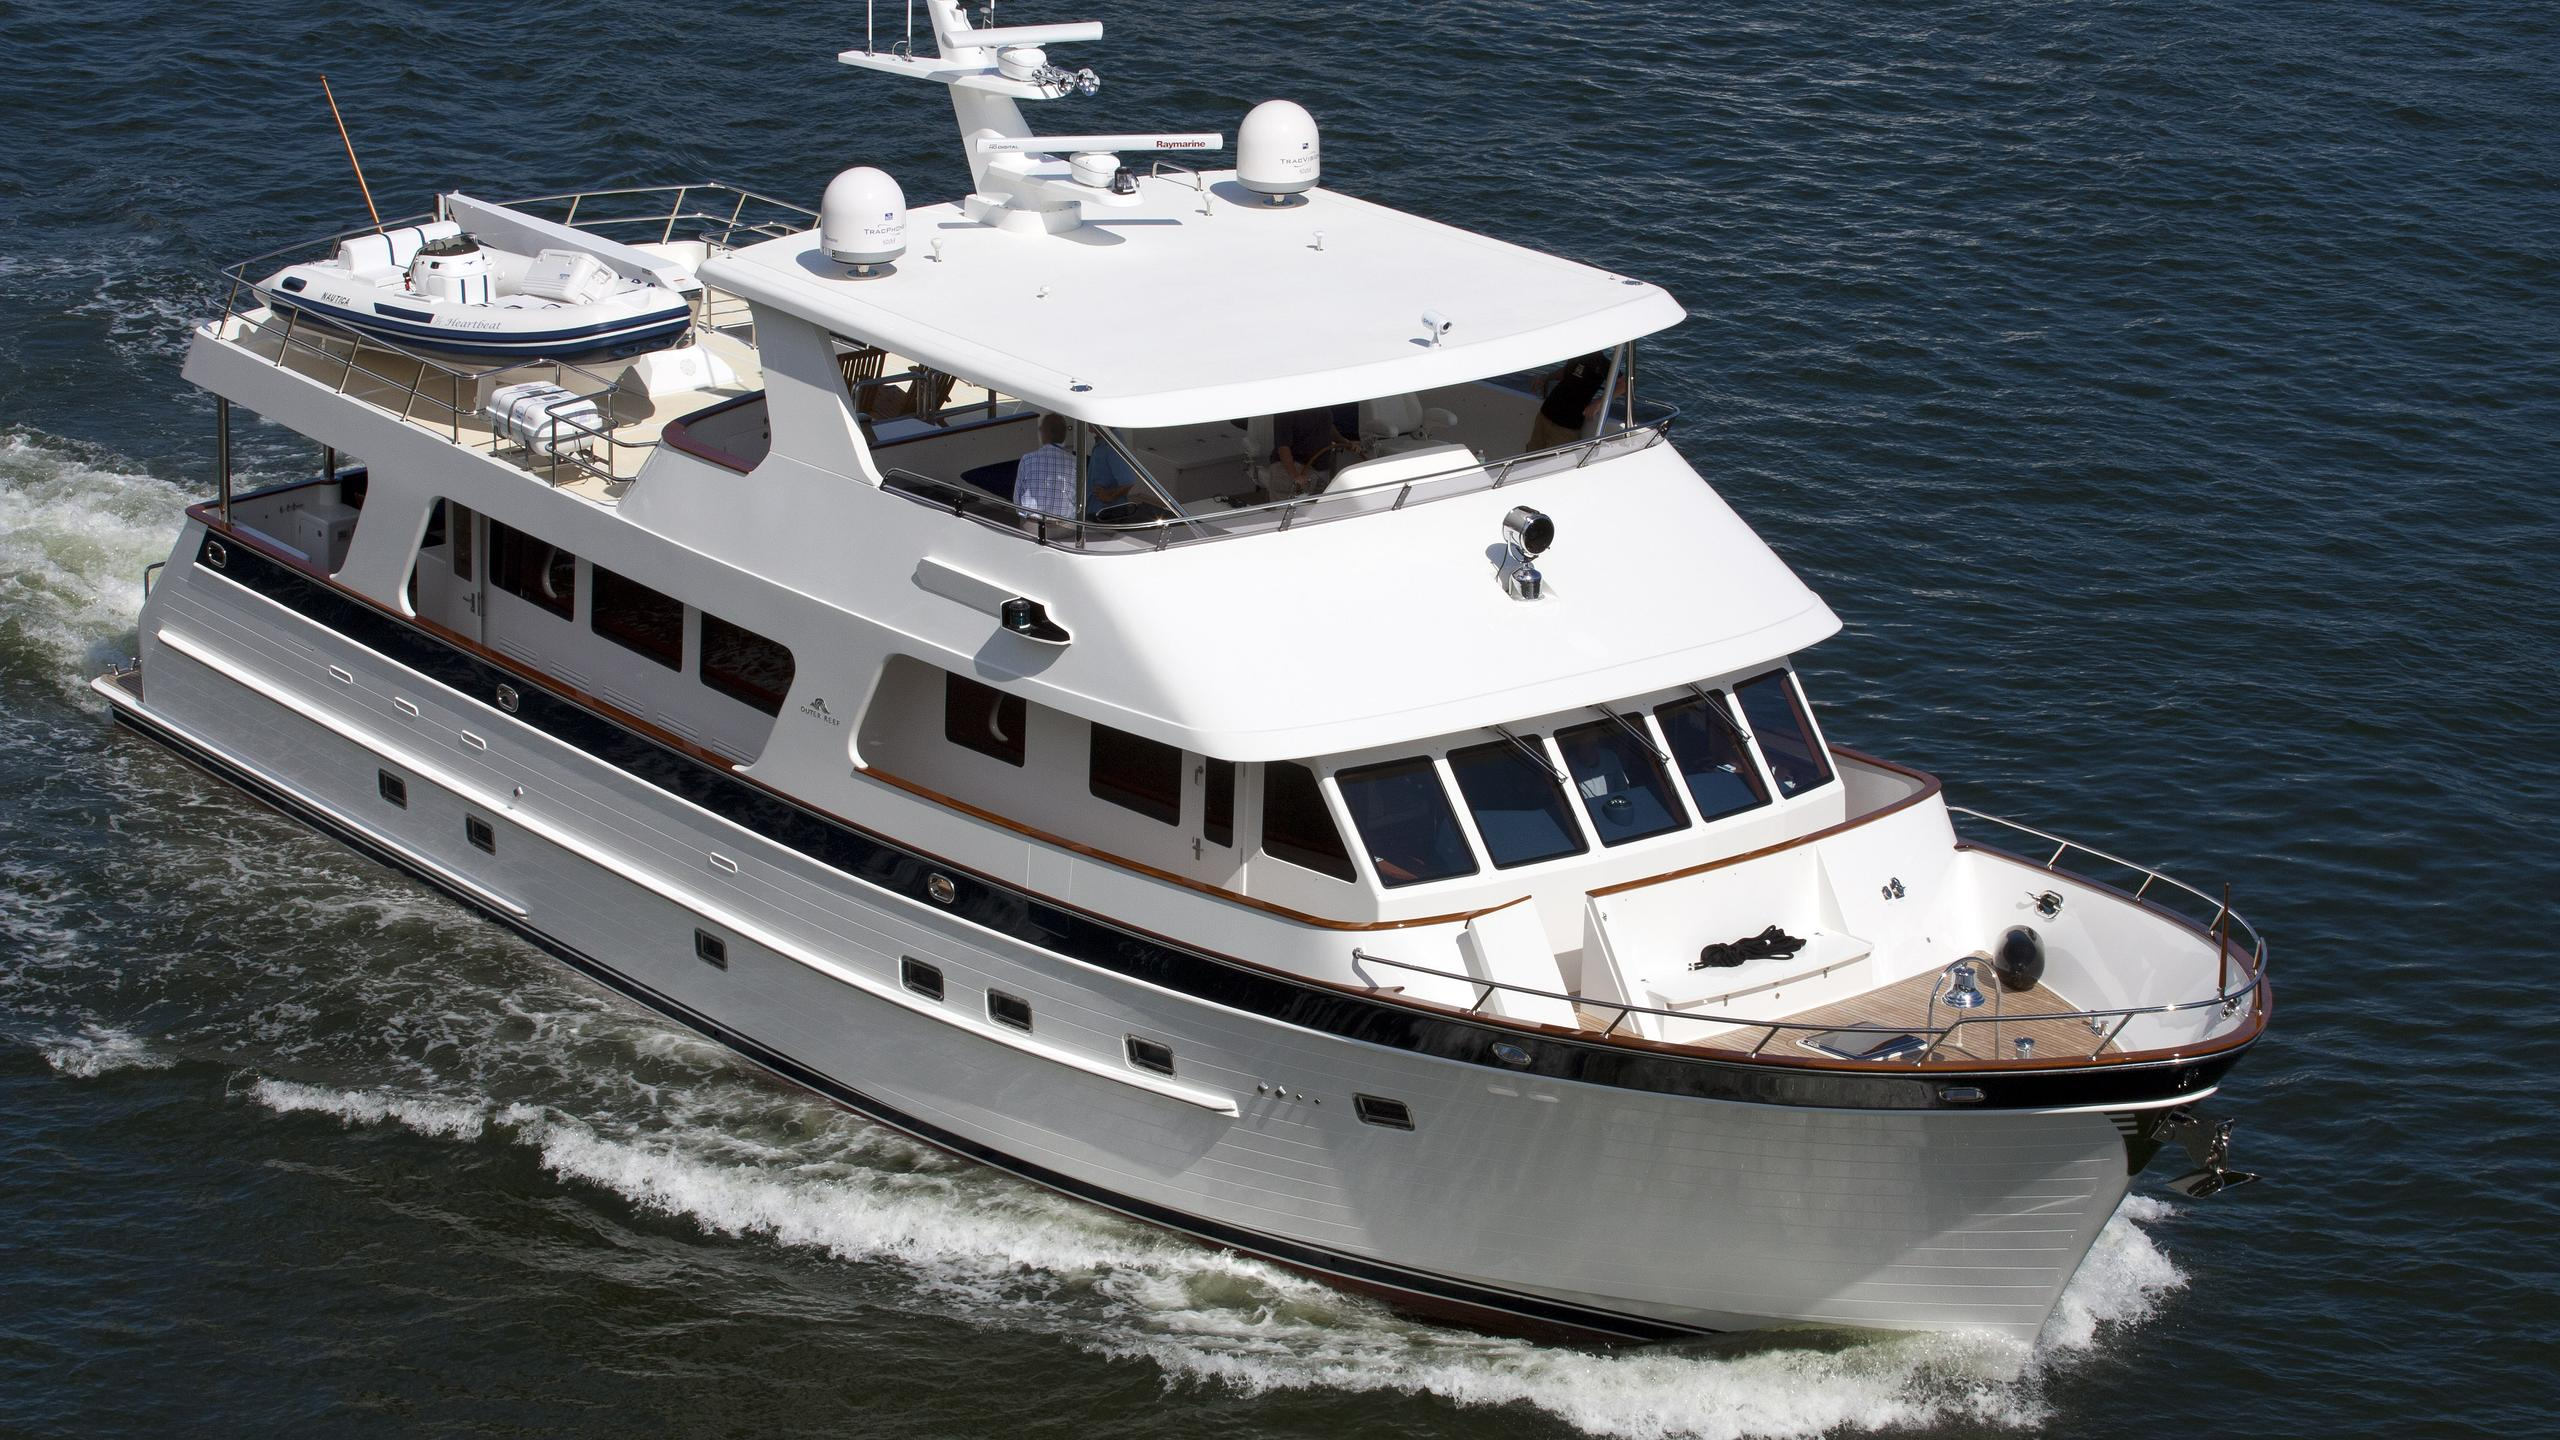 ginger-heartbeat-motor-yacht-outer-reef-2009-24m-cruising